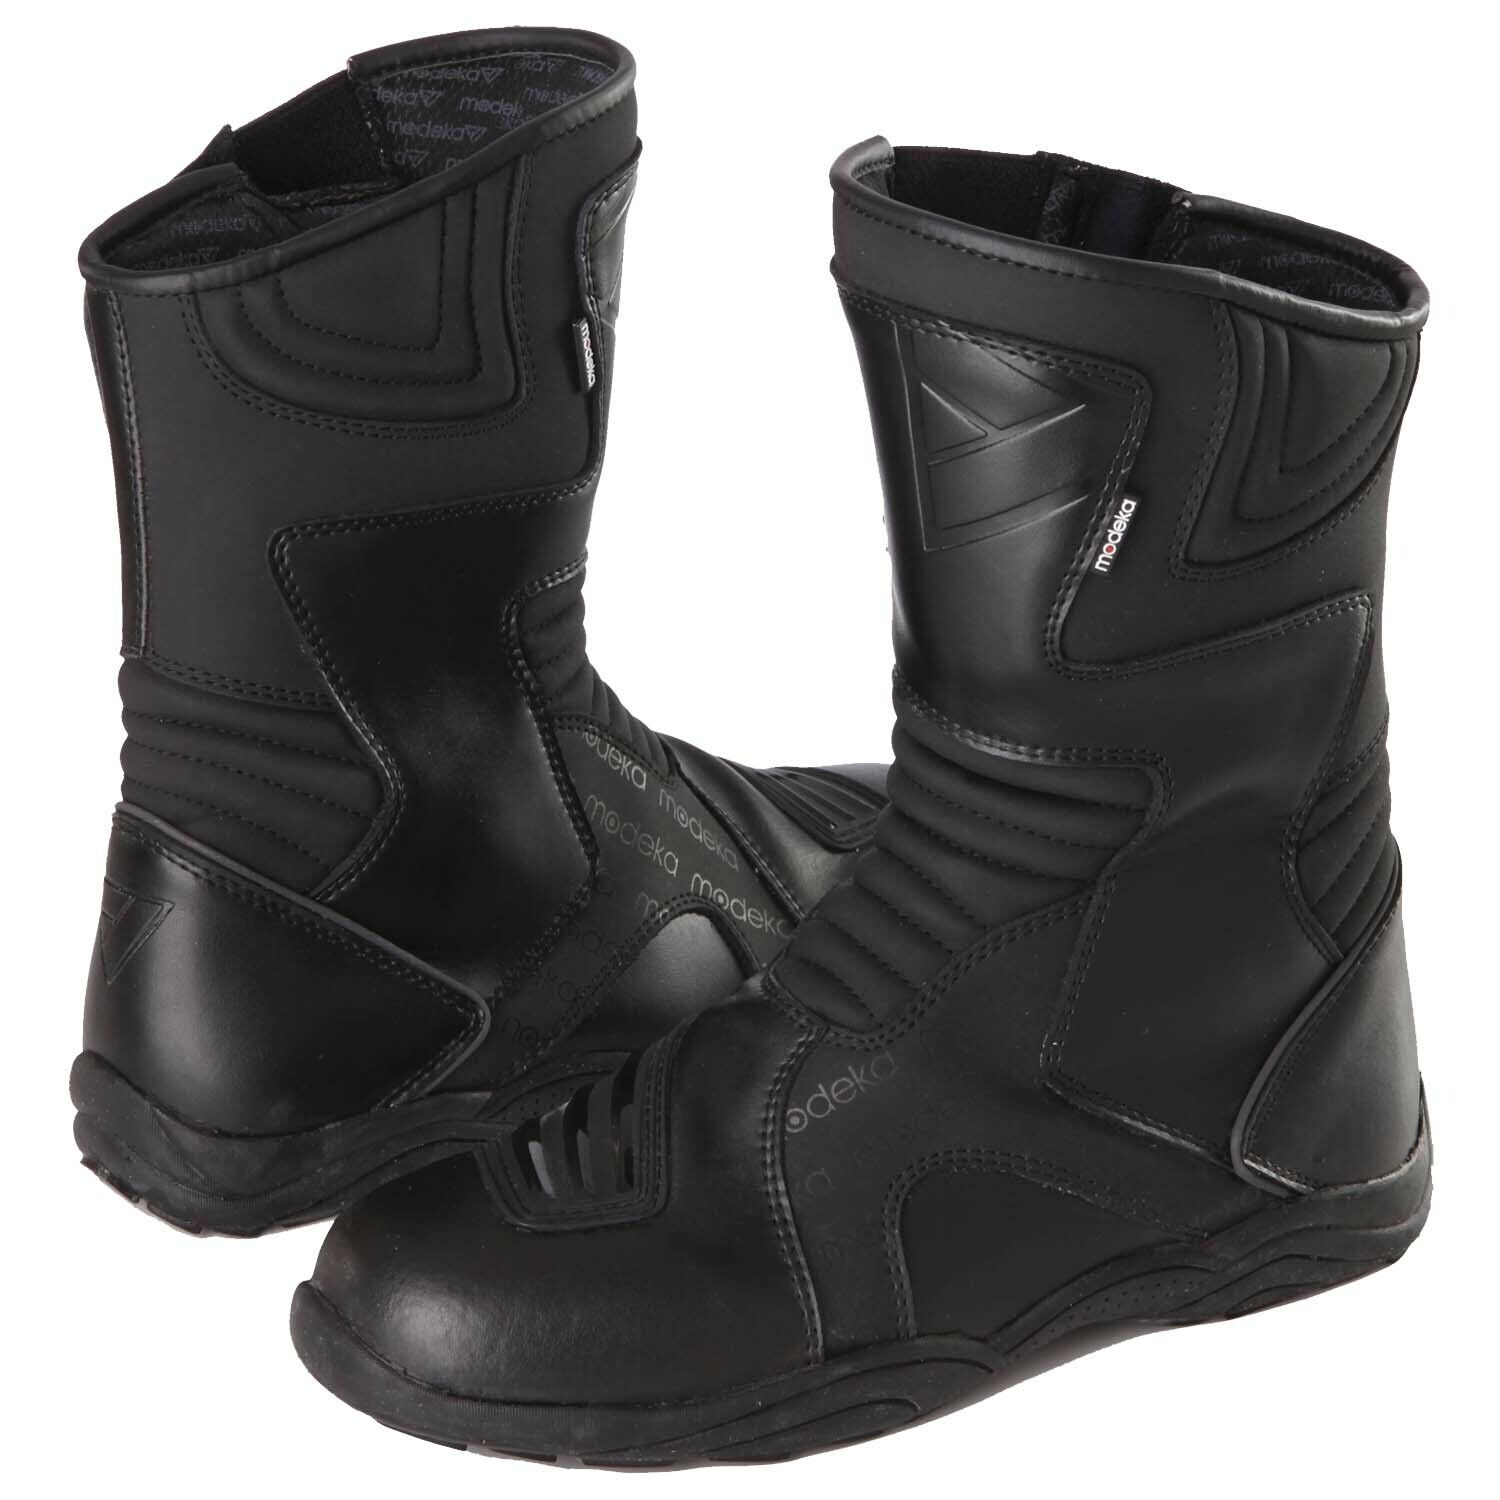 Modeka Grand Tour Men's Touring Motorcycle Boots Leather - Black